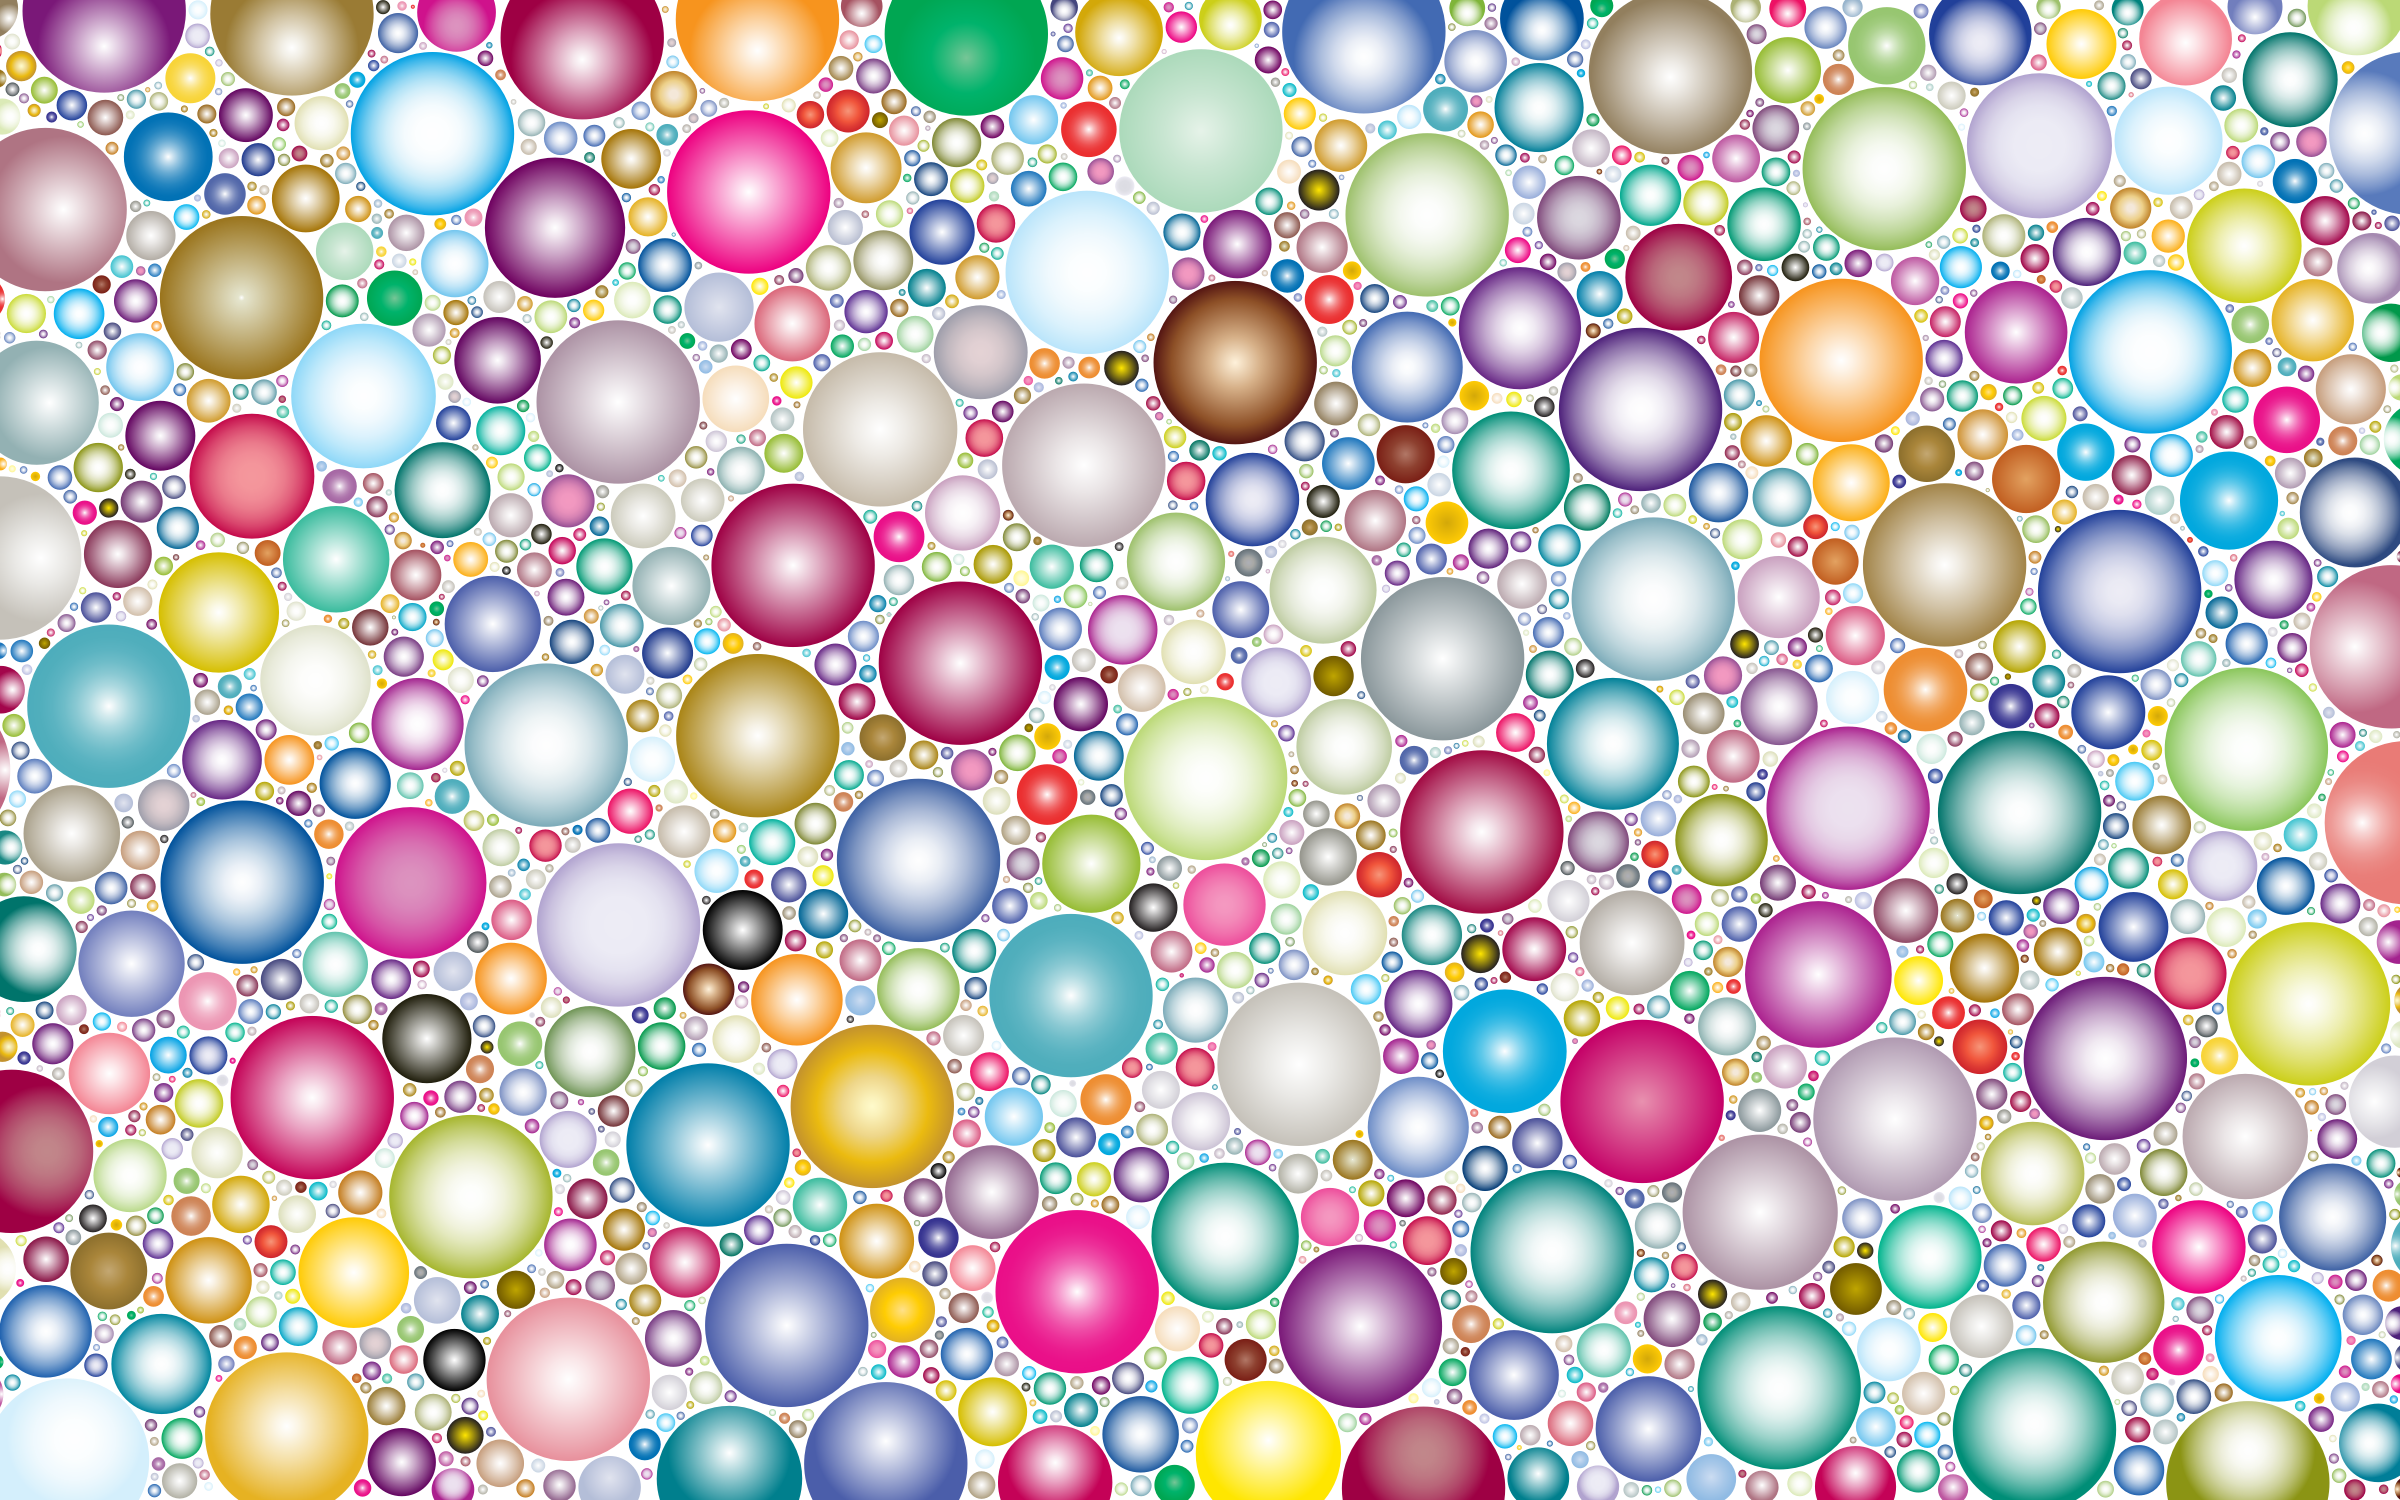 Prismatic Packed Circles 4 No Background by GDJ